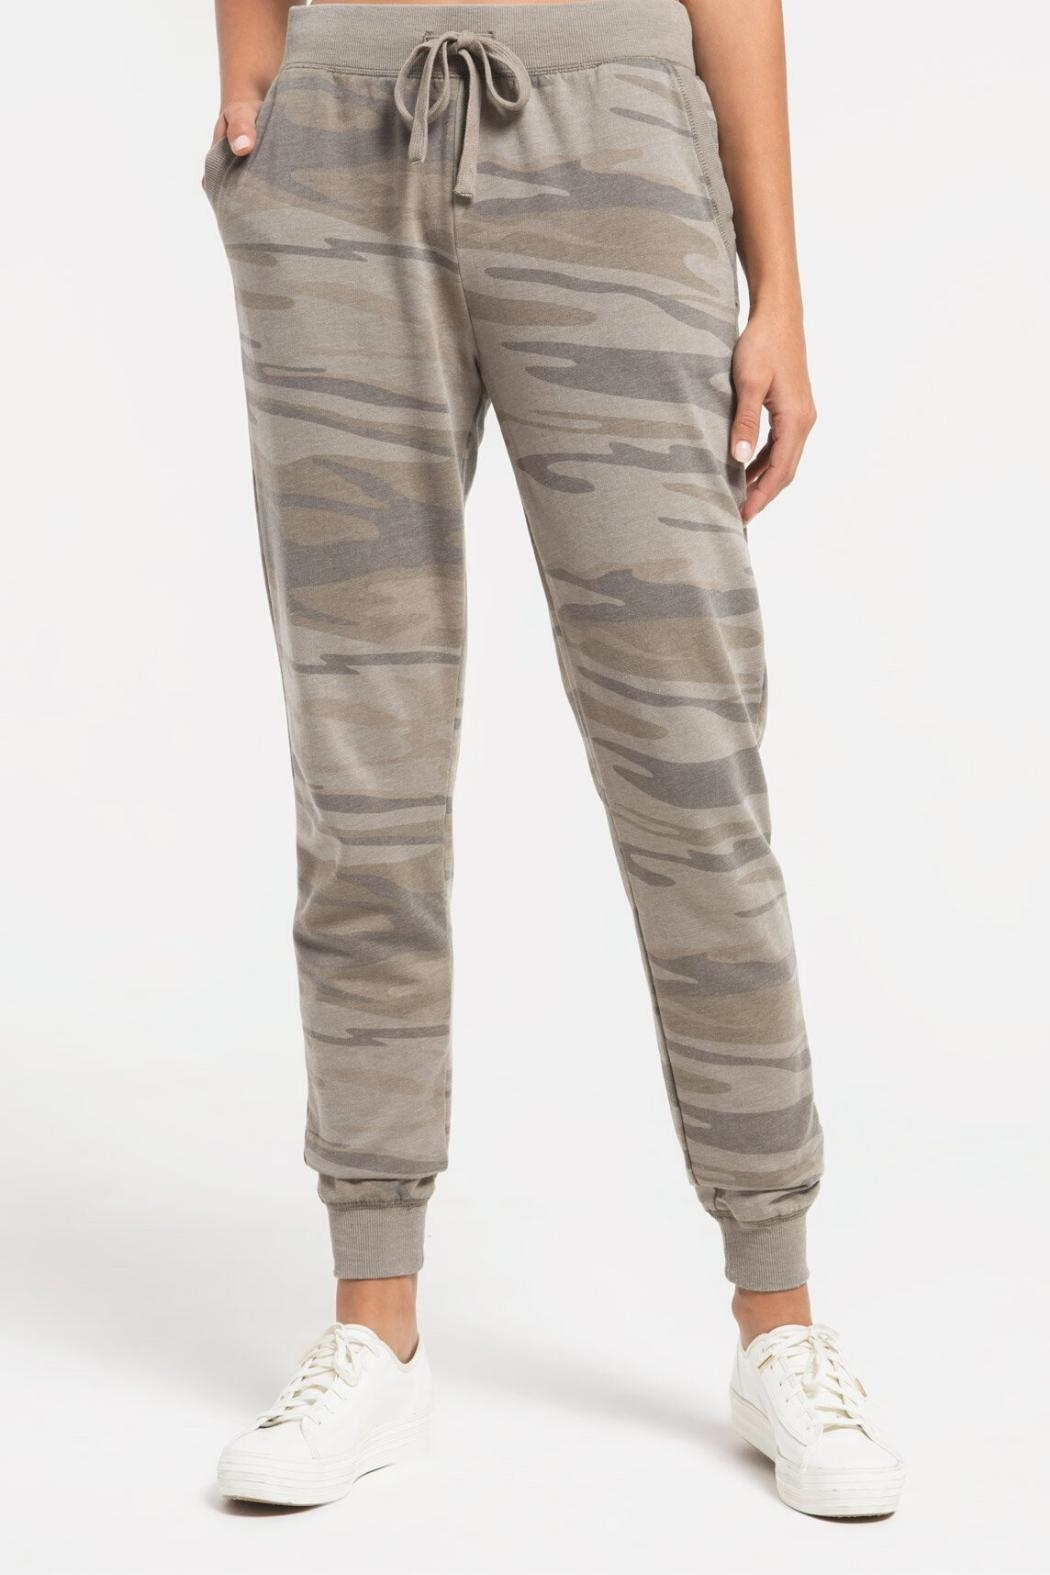 Zsupply Camo Pants, Light-Sage - Back Cropped Image